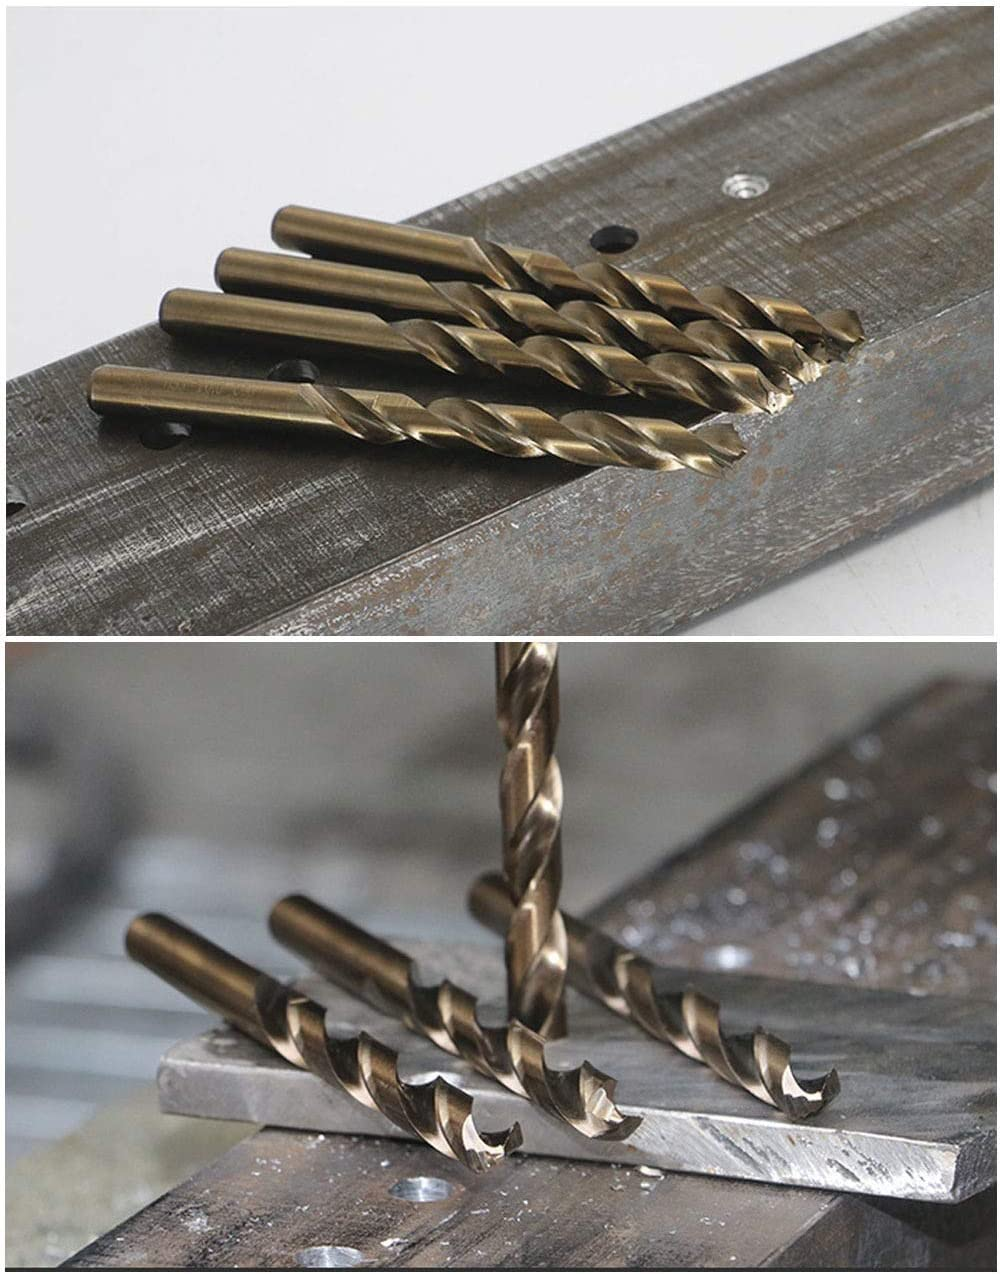 Cast Iron Stainless Steel professional Color : Cobalt, Size : 4.3mm 13mm used for Drilling on Hardened Steel 1PC HSS M42 Cobalt twist Drill Bit 1mm